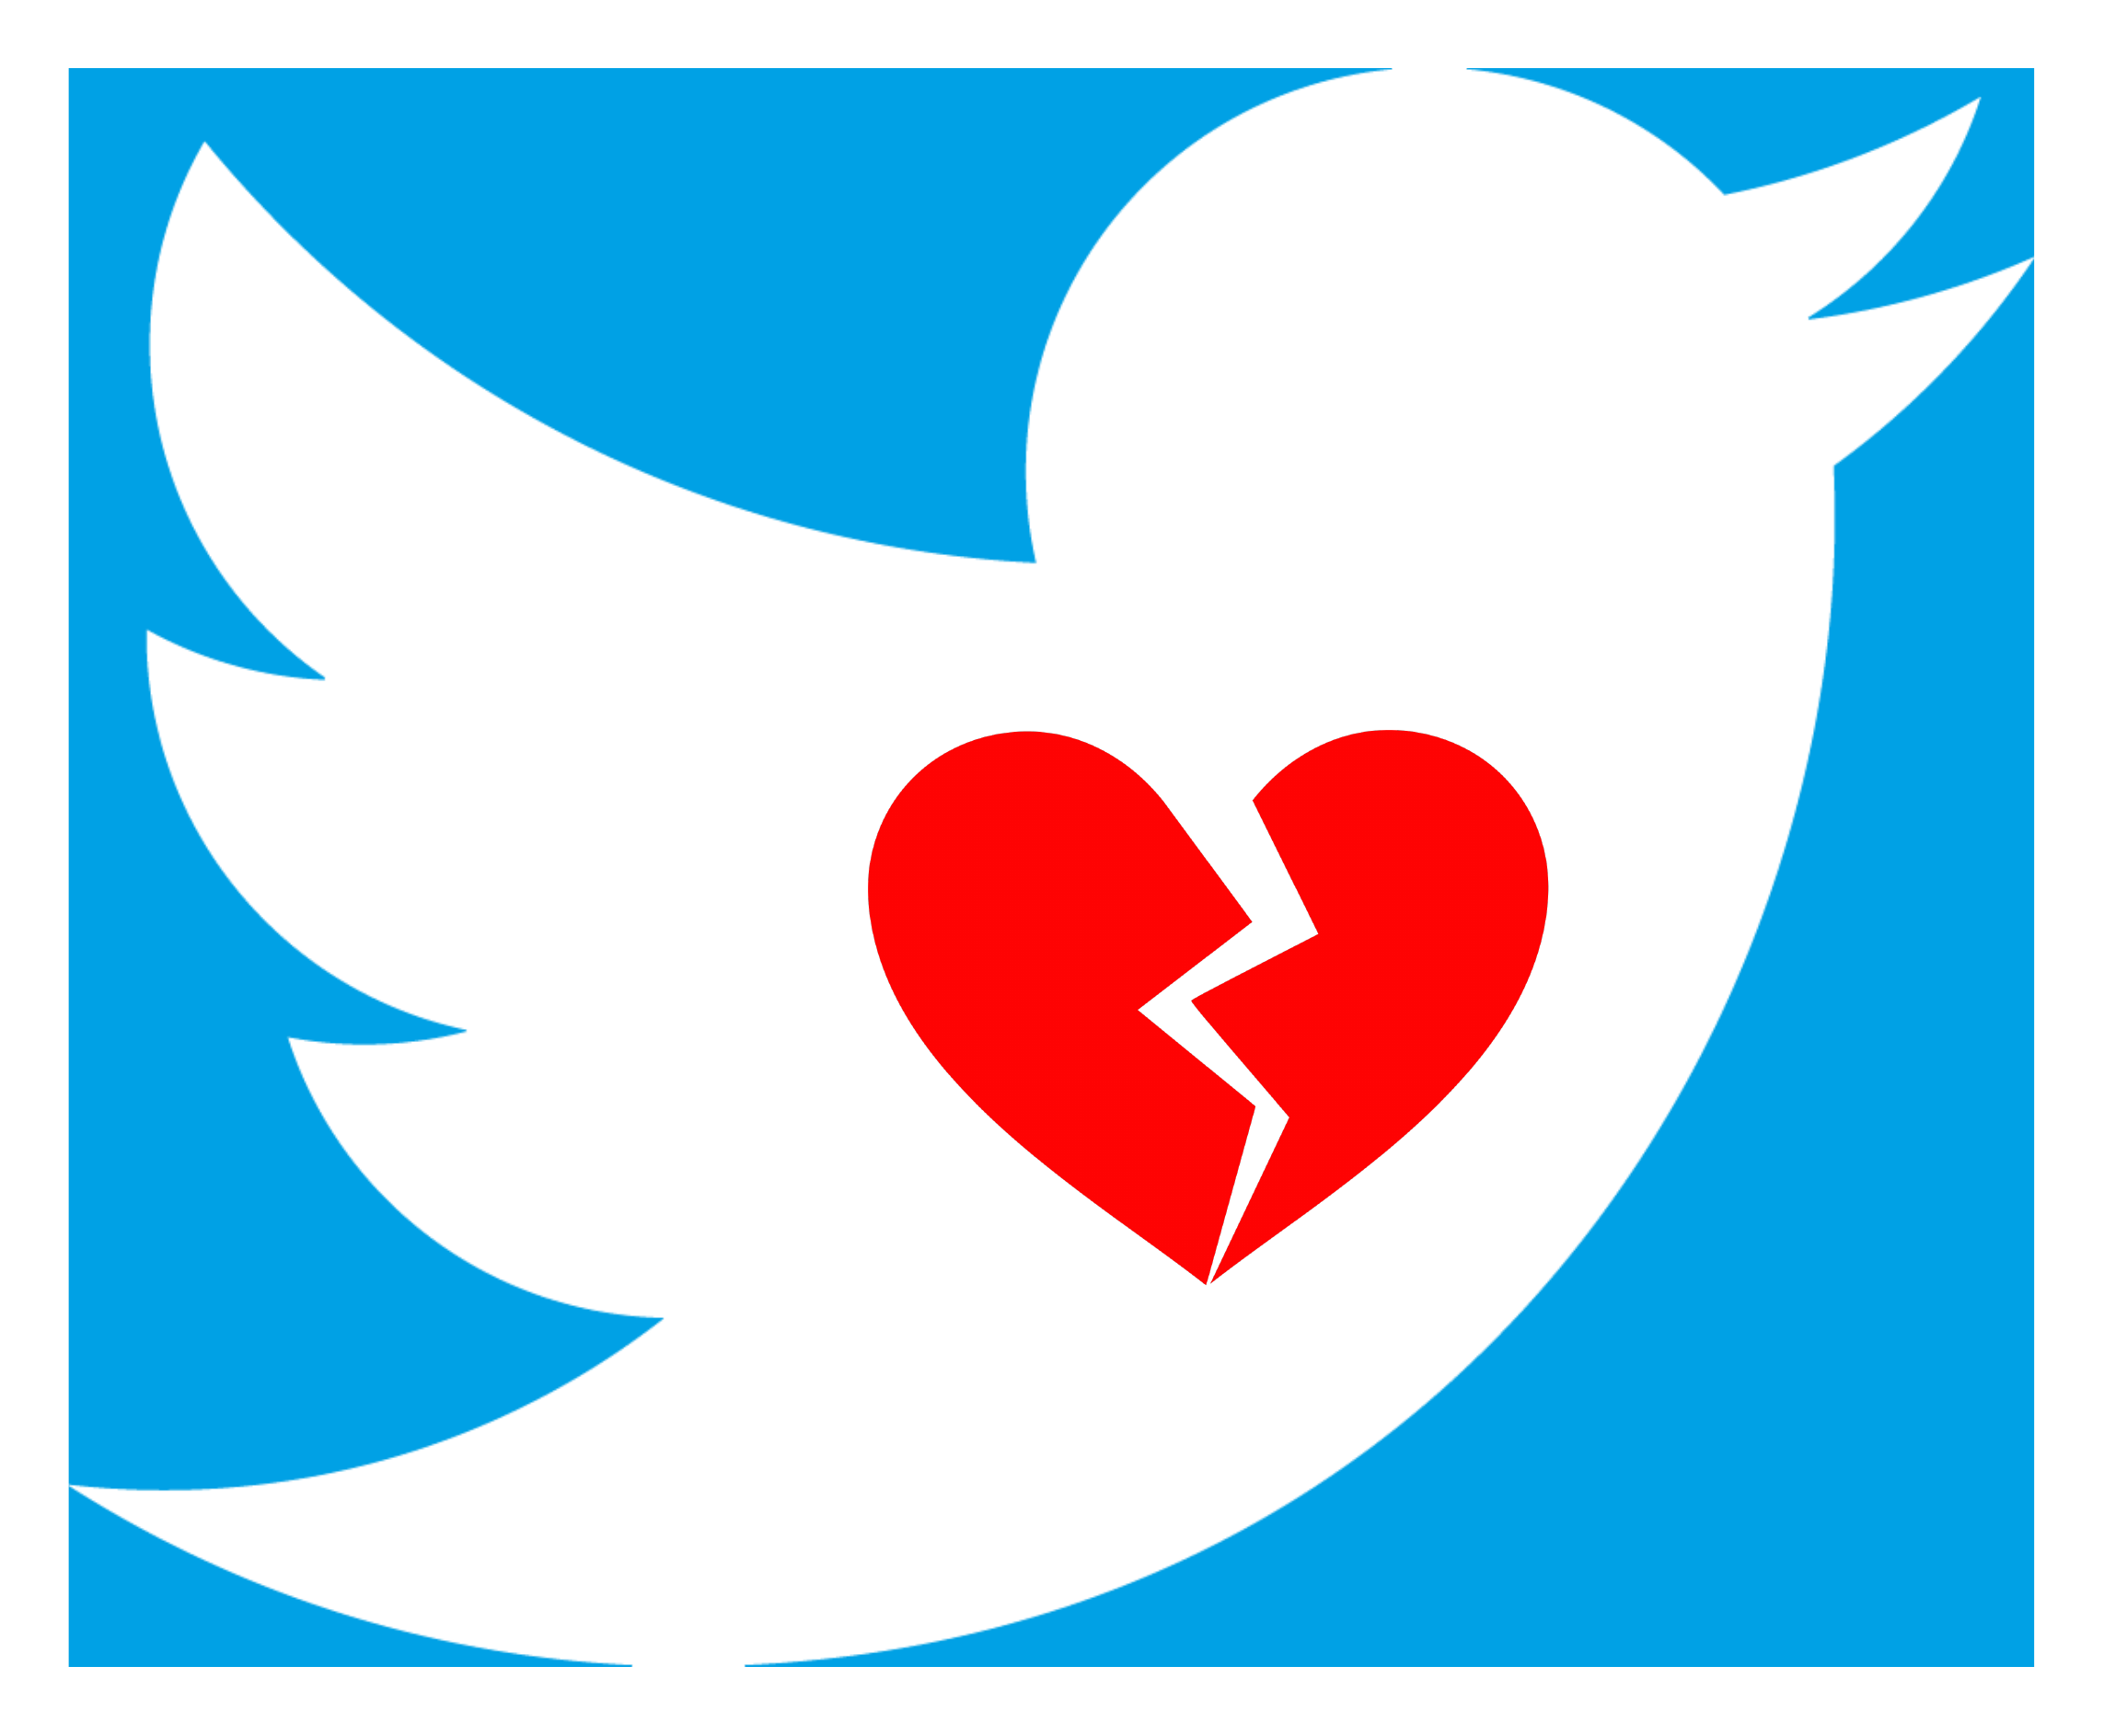 twitter-a-love-hate-relationship